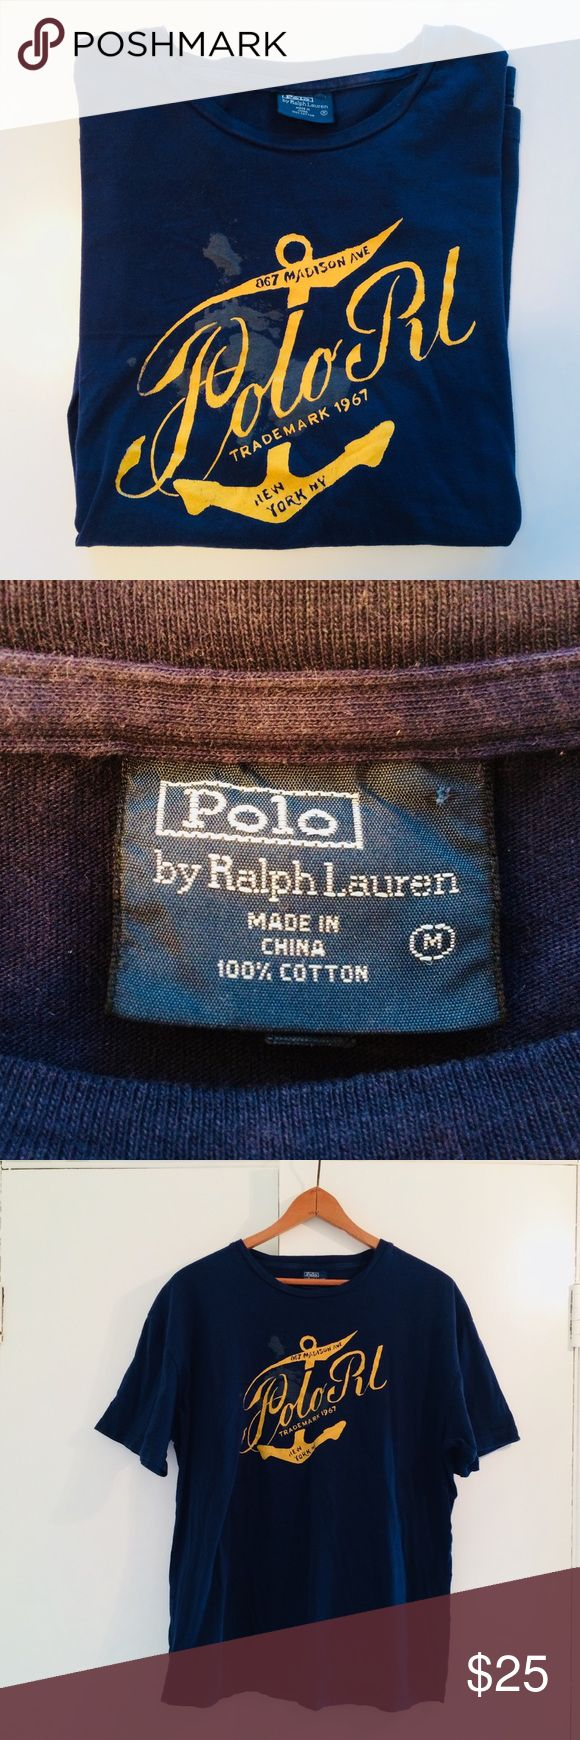 Polo Ralph Lauren - Madison Avenue Shirt - Size M Polo Ralph Lauren - Madison Avenue Shirt - Size M. Awesome condition - has been worn and laundered. No rips, no stains, no tears. GREAT graphic design. Would be great for men or ladies. Polo by Ralph Lauren Shirts Tees - Short Sleeve